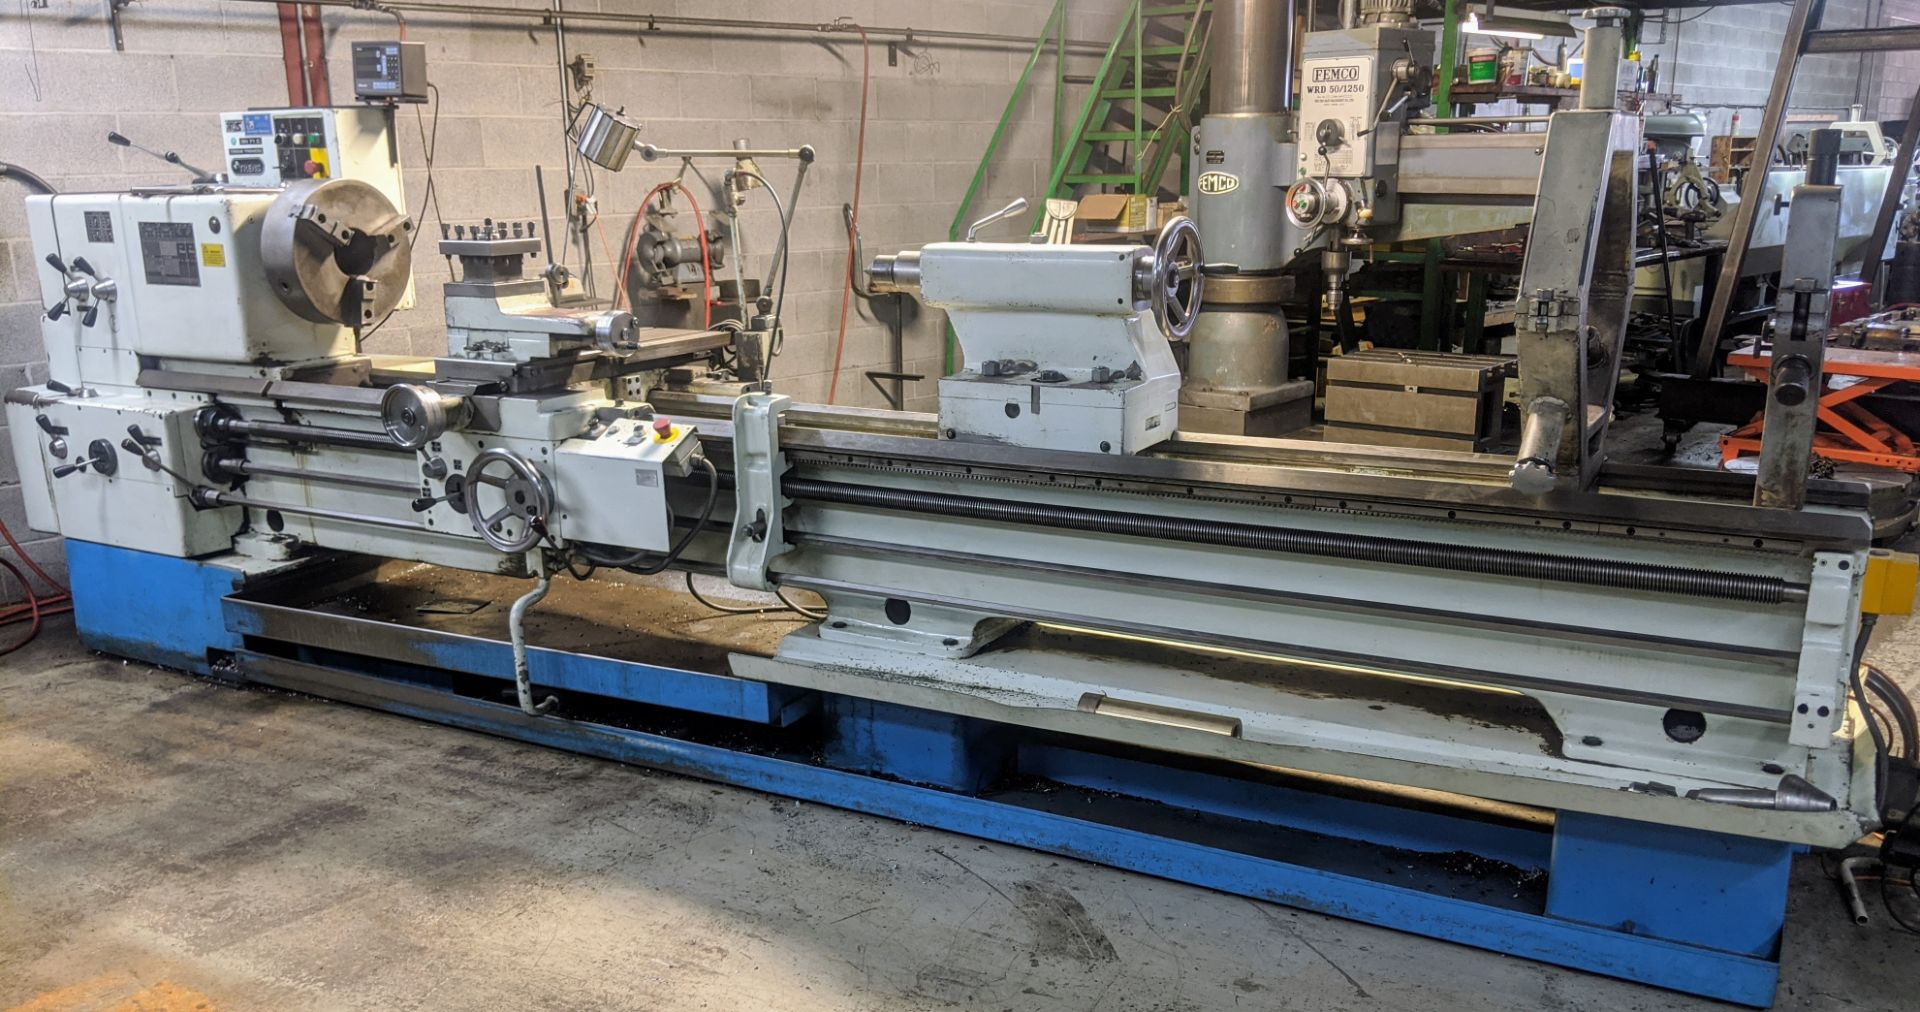 """Lot 15 - TOS SN71C Lathe, 28"""" x 120"""", Mitutoyo 2-Axis DRO, 16"""" 3-Jaw Chuck, 3"""" Bore, Speeds to 1,000 RPM,"""